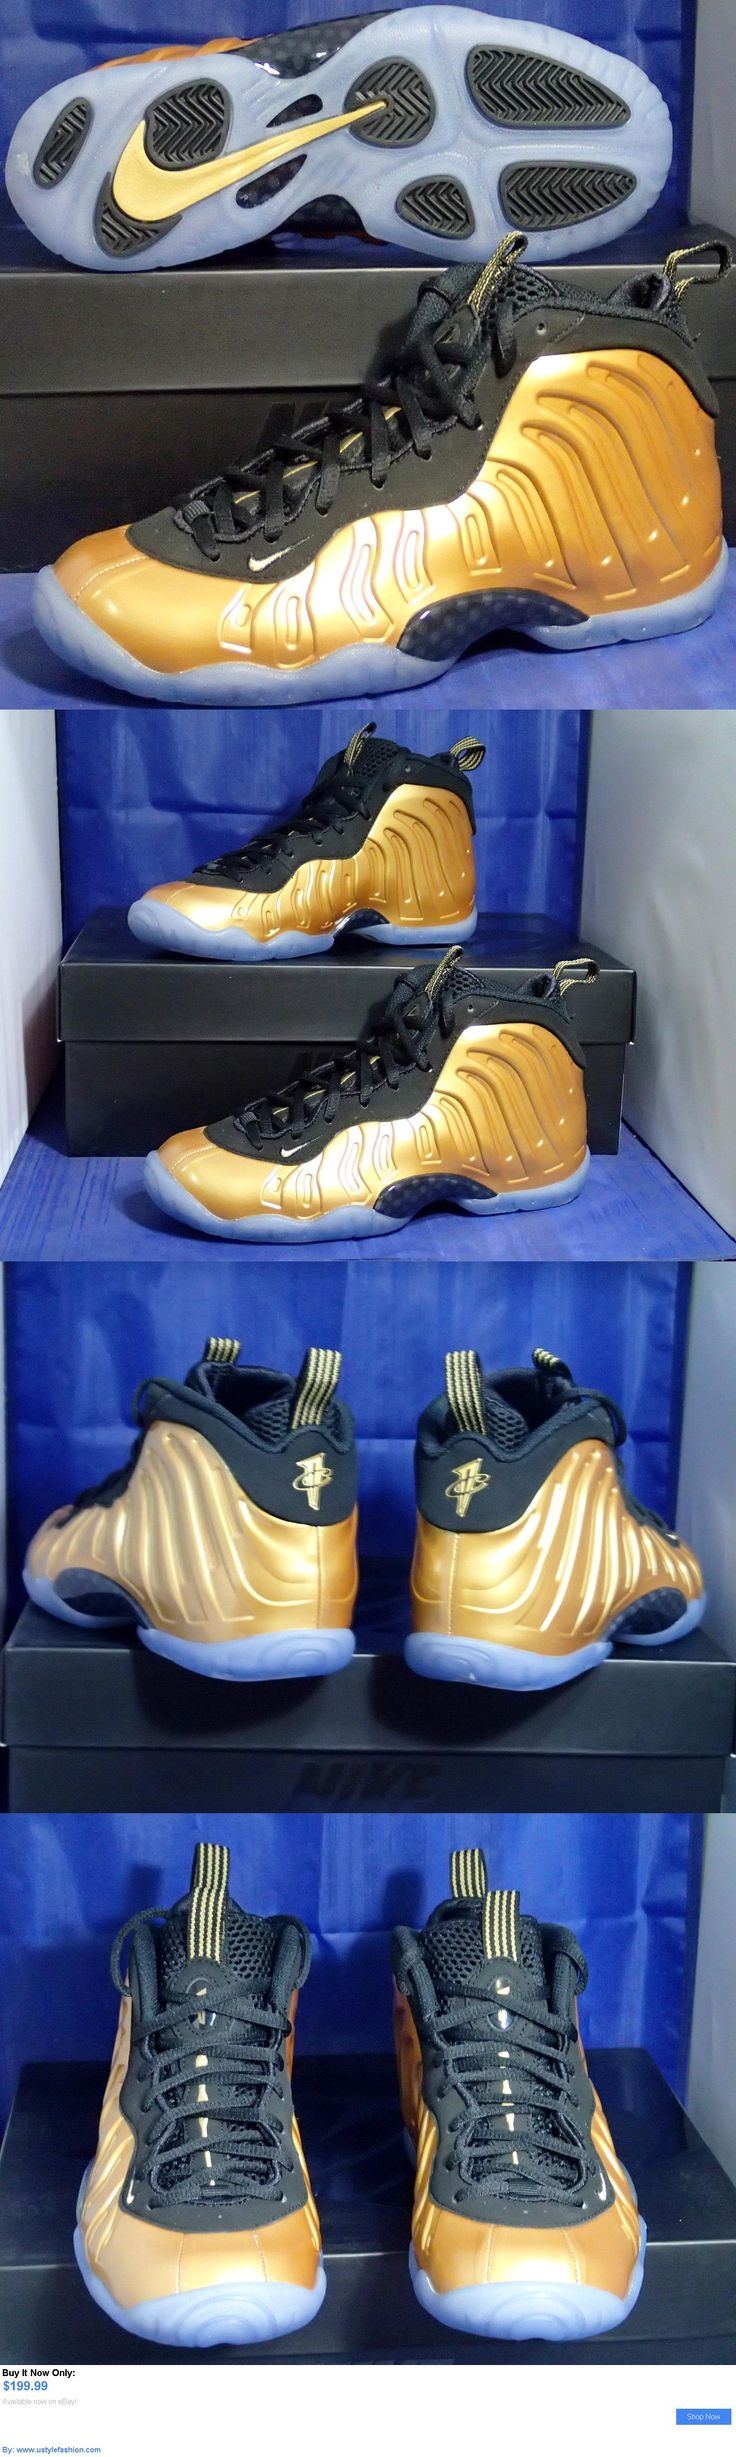 Children boys clothing shoes and accessories: Nike Little Posite One Foamposite Gold Black (Gs) Youth Sz 7Y ( 644791-700 ) BUY IT NOW ONLY: $199.99 #ustylefashionChildrenboysclothingshoesandaccessories OR #ustylefashion